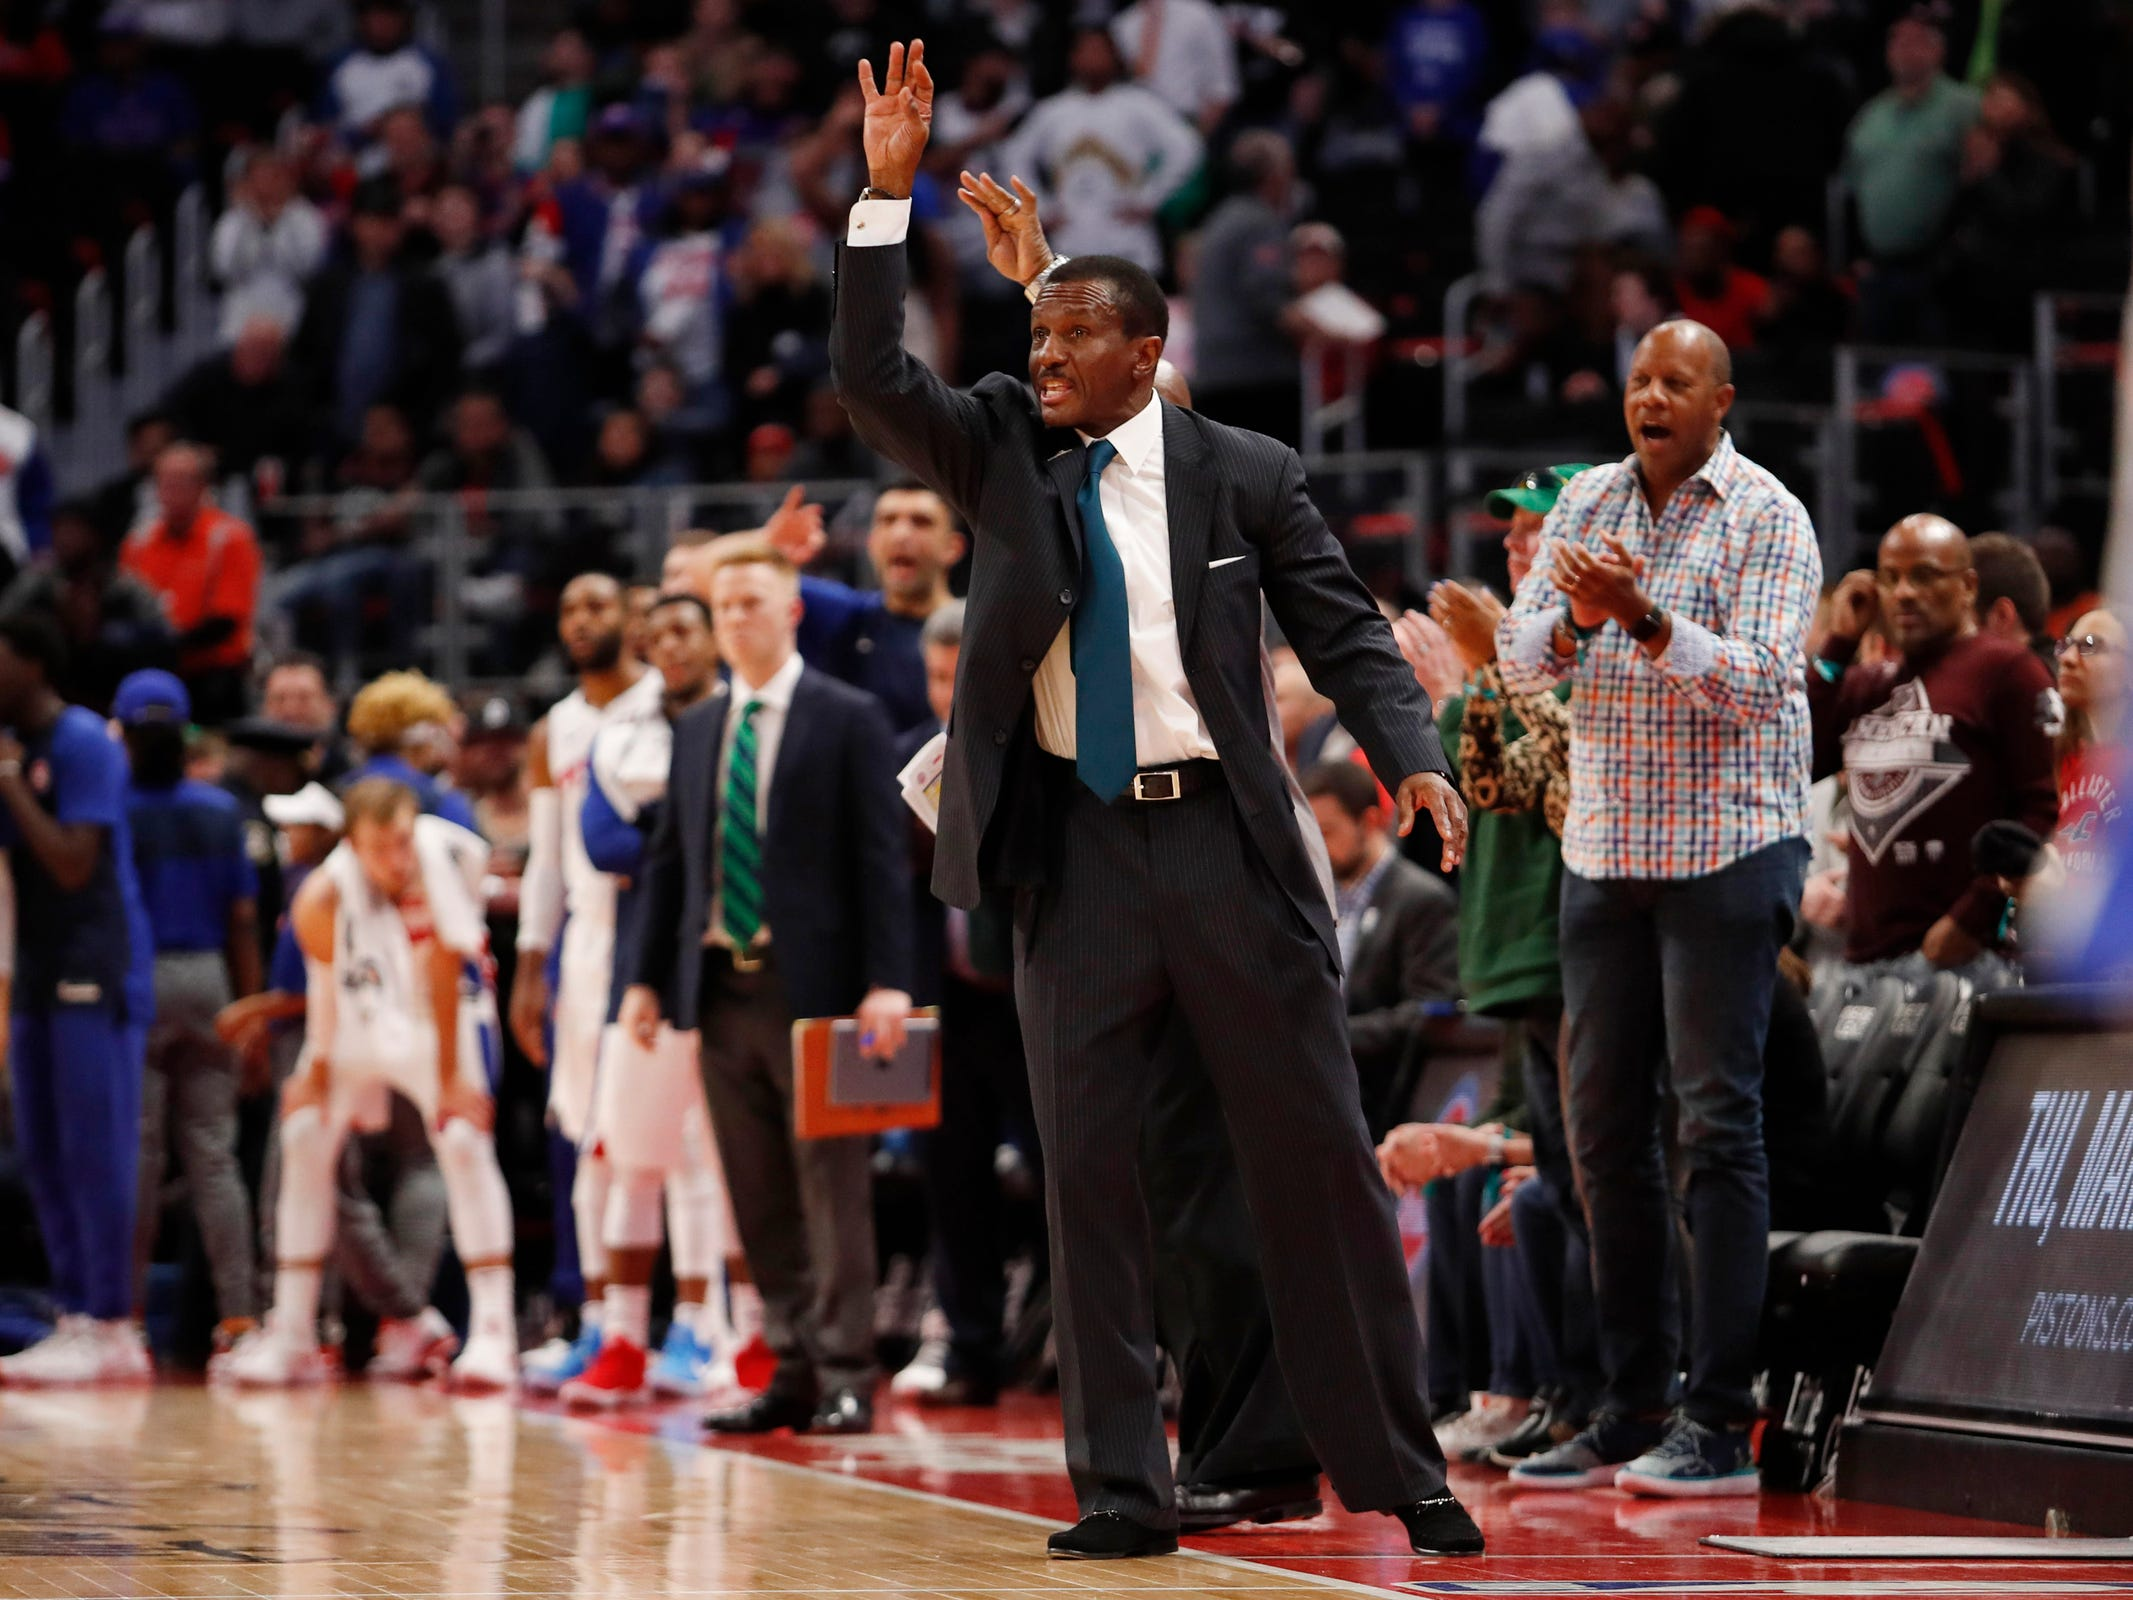 Detroit Pistons head coach Dwane Casey calls a play during the fourth quarter against the Toronto Raptors at Little Caesars Arena, Sunday, March 17, 2019.